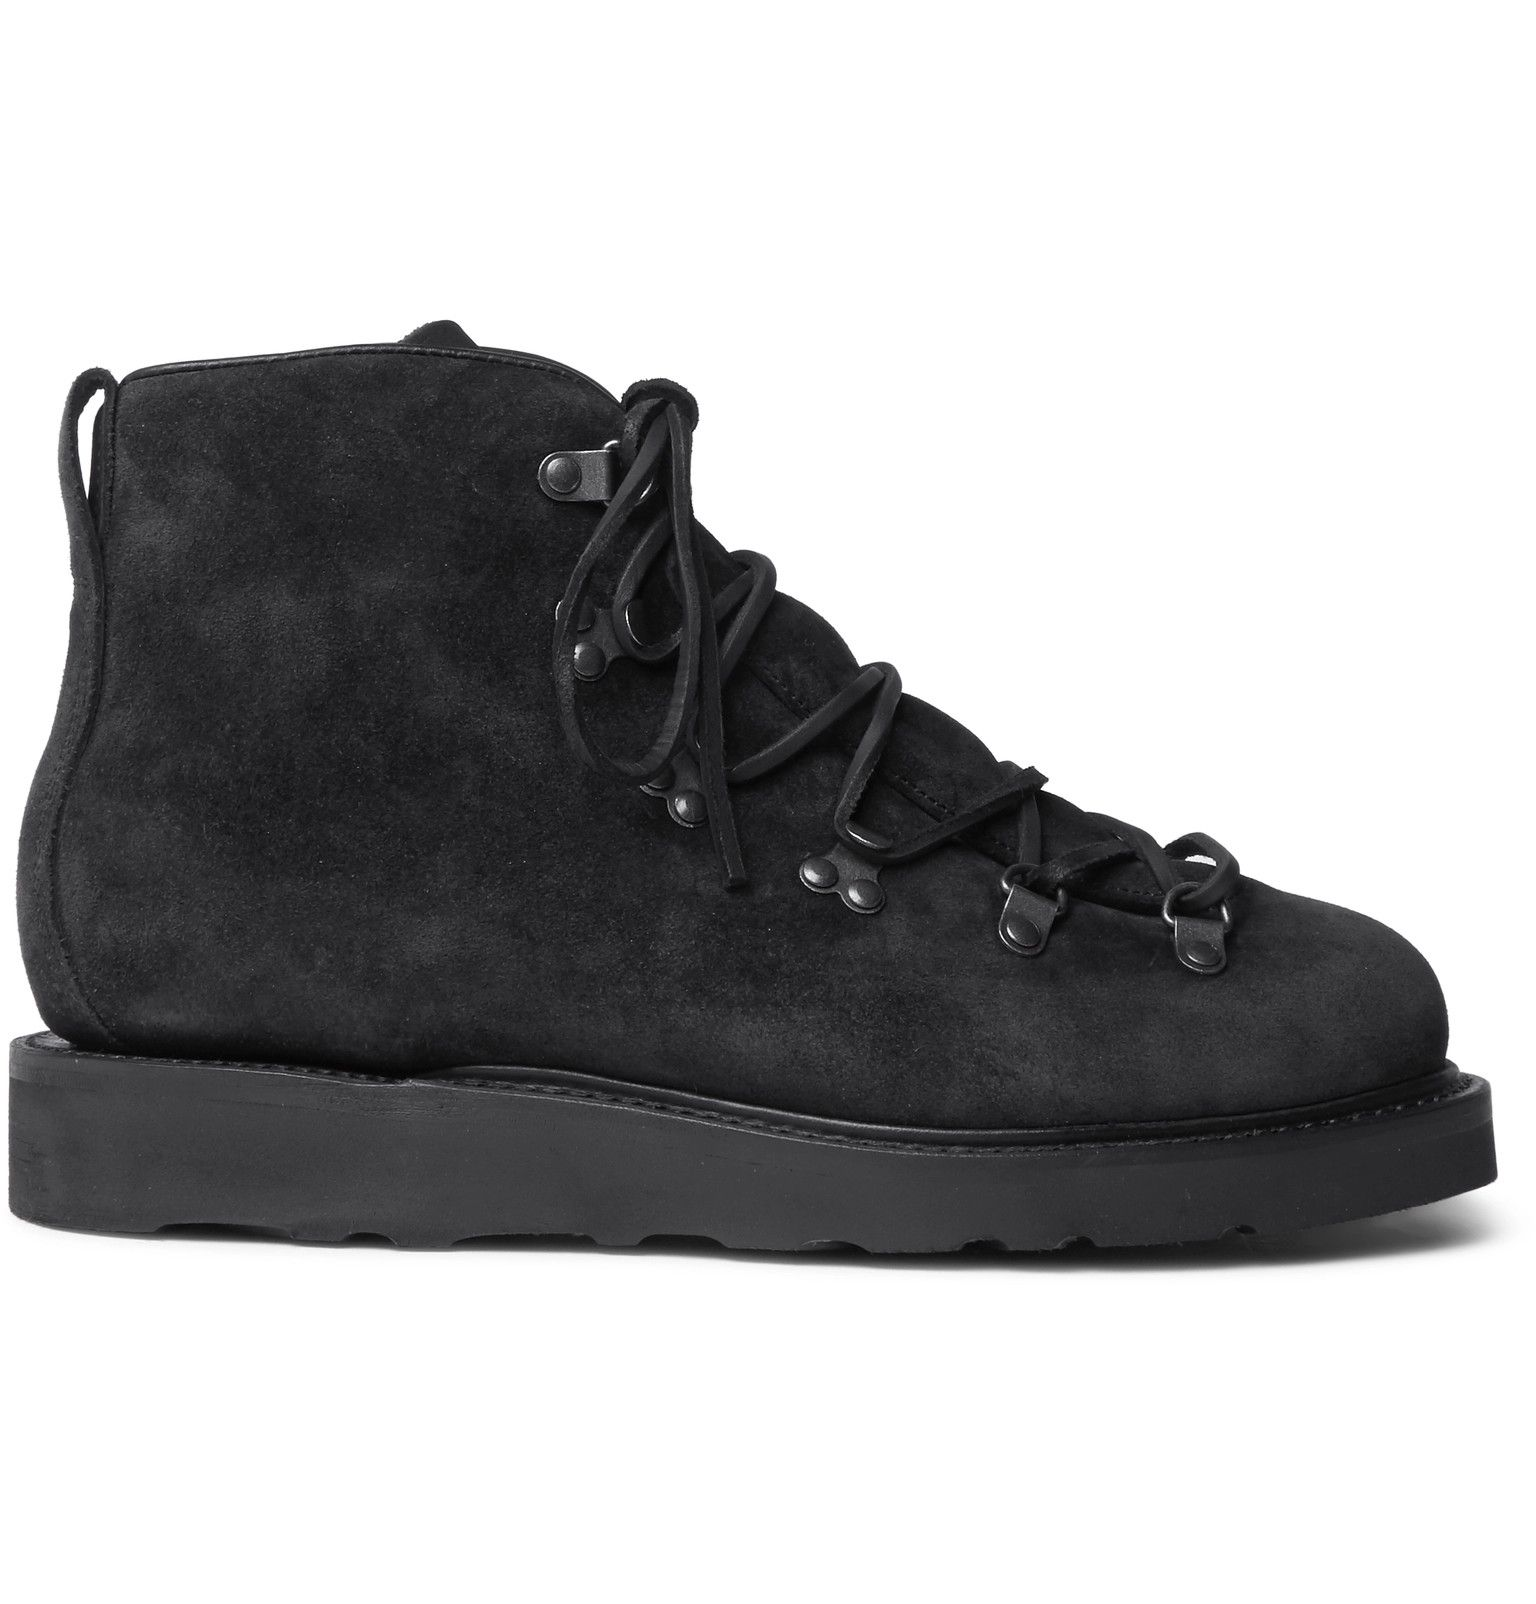 VIBERG - Suede Hiking Boots - $690